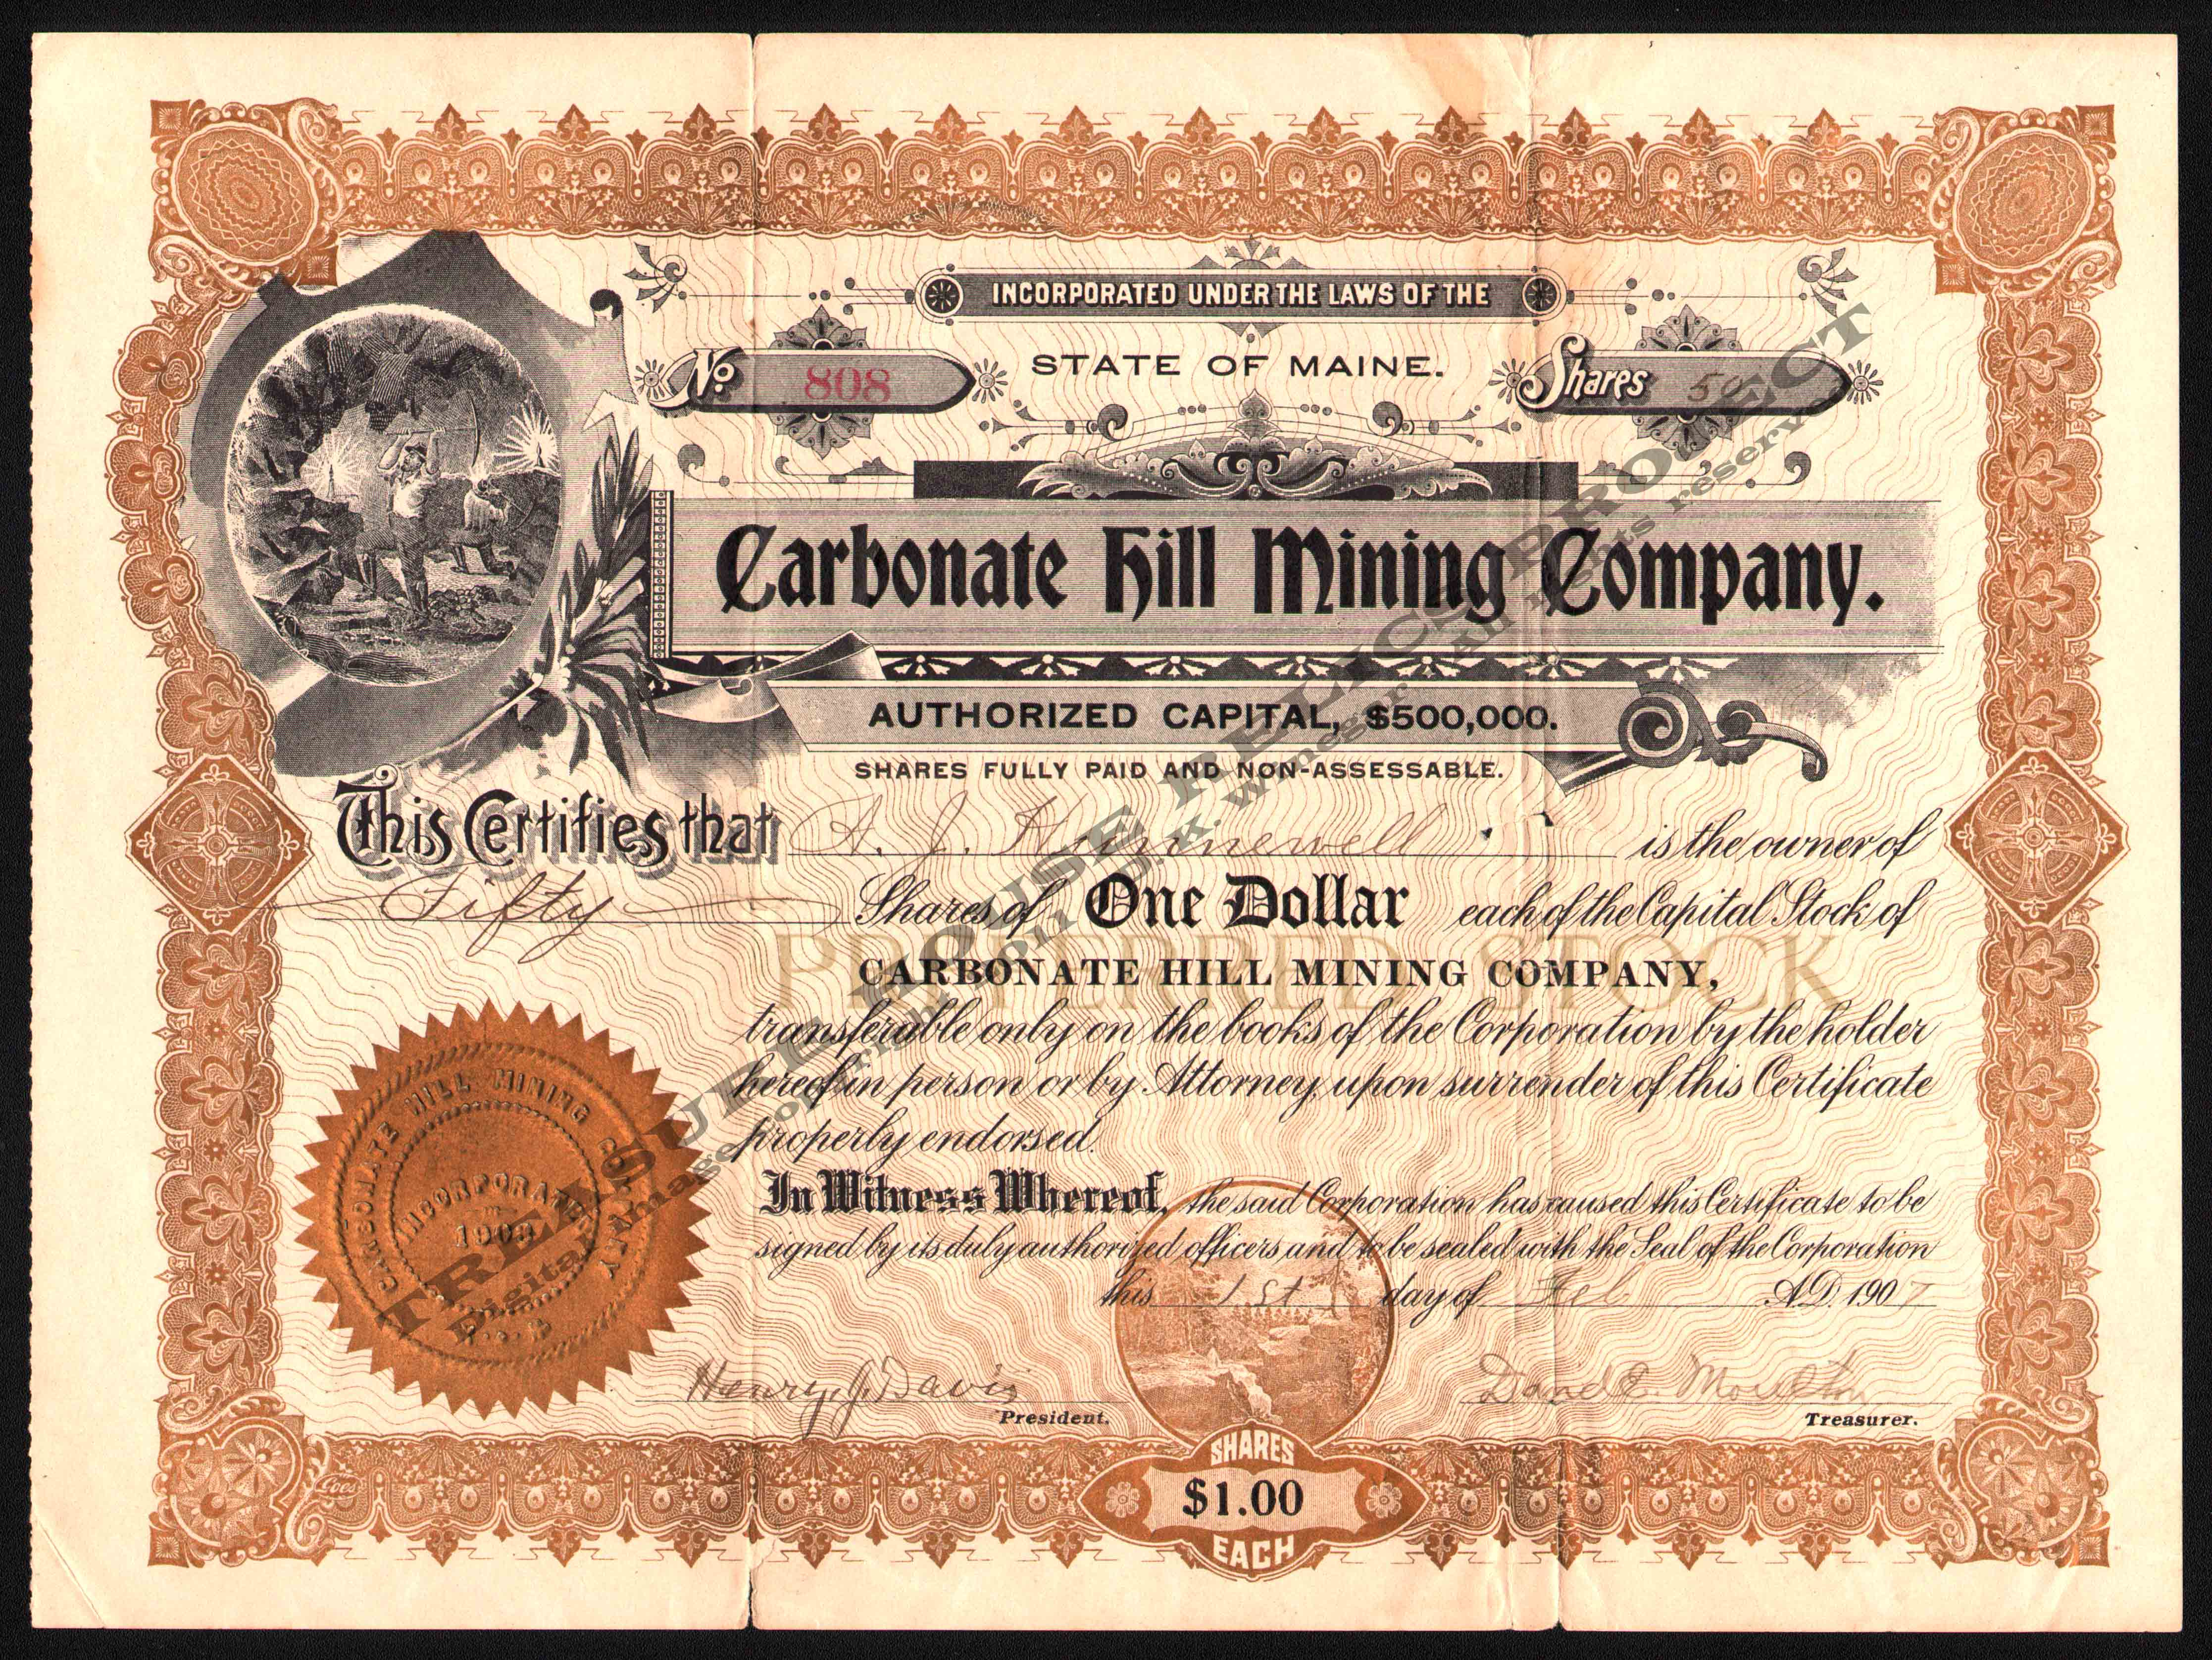 CARBONATE_HILL_MINING_COMPANY_808_1907_400_EMBOSS.jpg